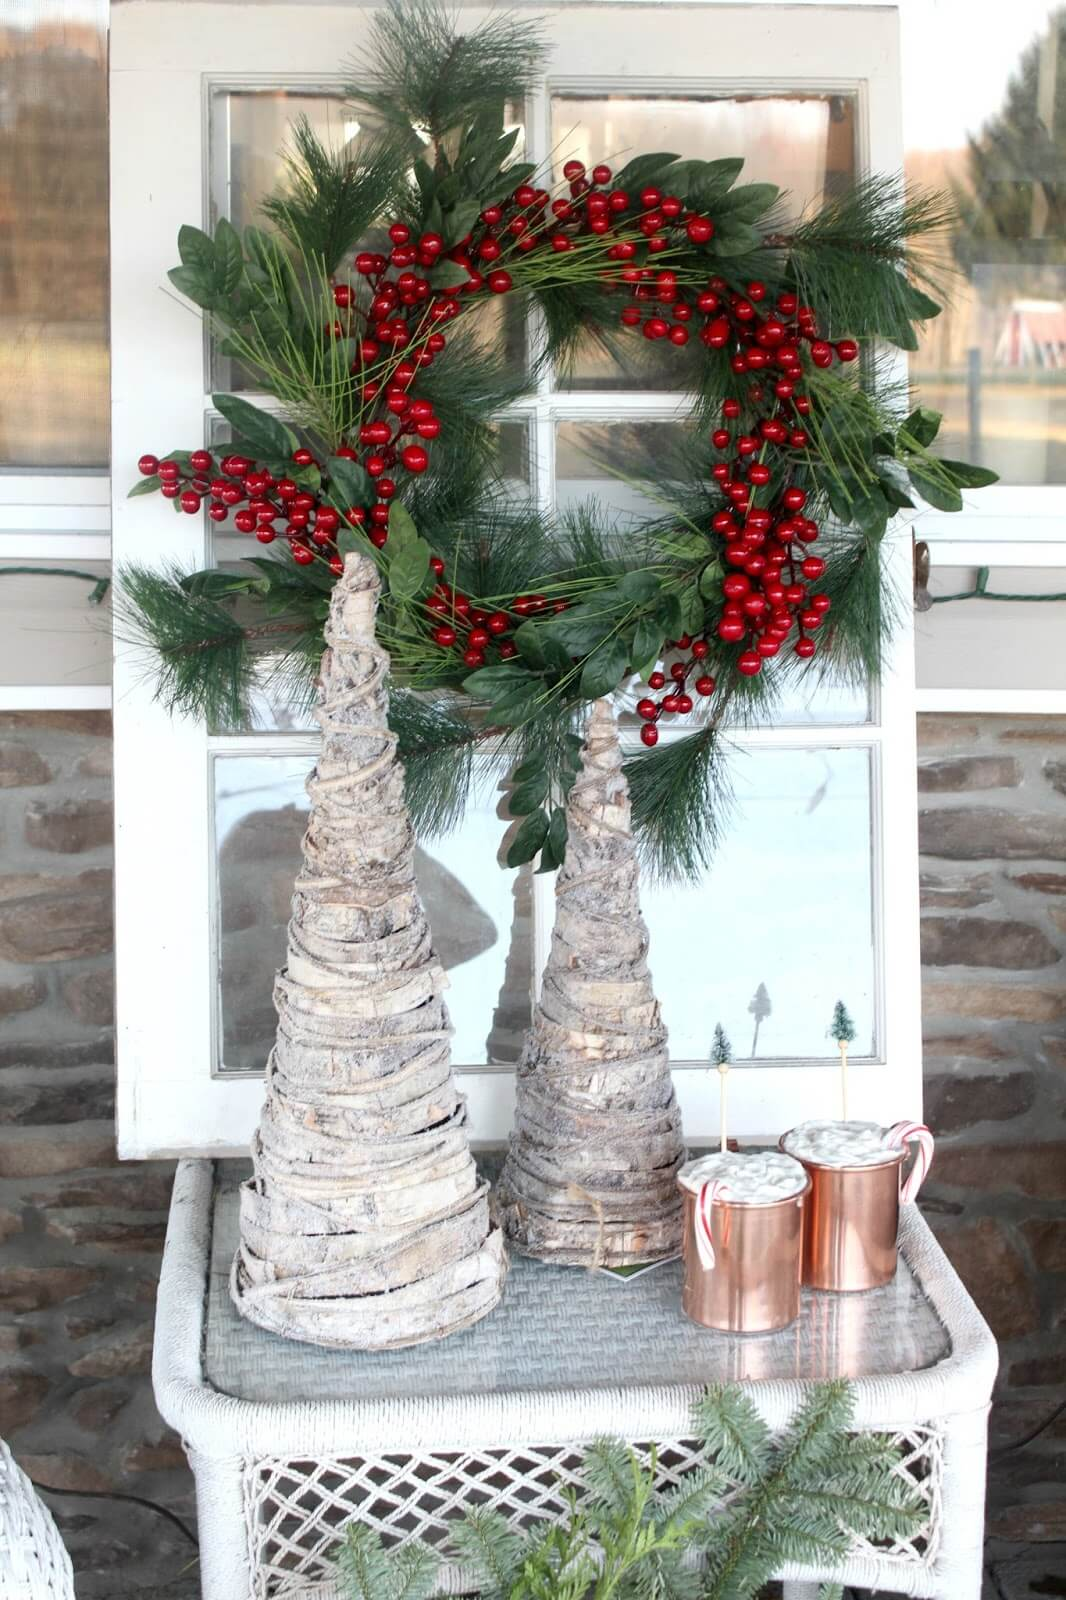 Rustic Christmas Decorations! Here Are 15 Inspirational. Decorating Christmas Tree With Sinamay. Christmas Front Porch Decorations Pictures. Christmas Decorations In Colonial America. Christmas Decorations Making Your Own. Bethlehem Lights Christmas Decorations. Outdoor Lighted Christmas Presents Yard Decor. Where To Buy Christmas Decorations In Johannesburg. Christmas Decorations For Grotto